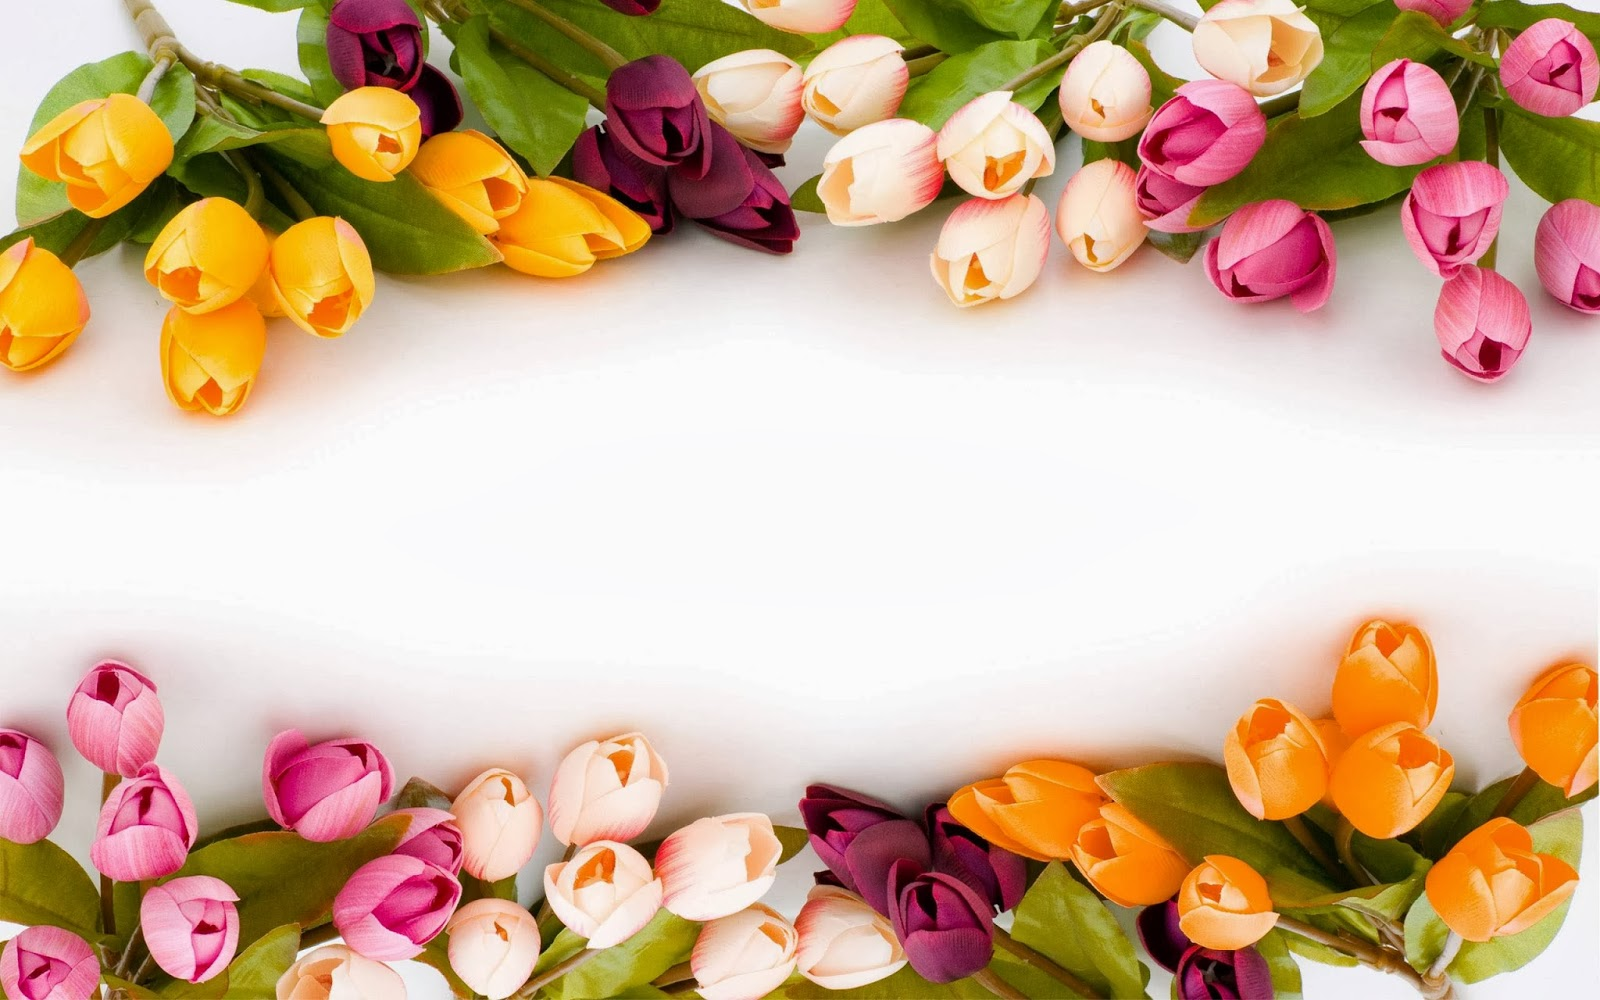 Buy World in the Flowers wallpaper picture trends